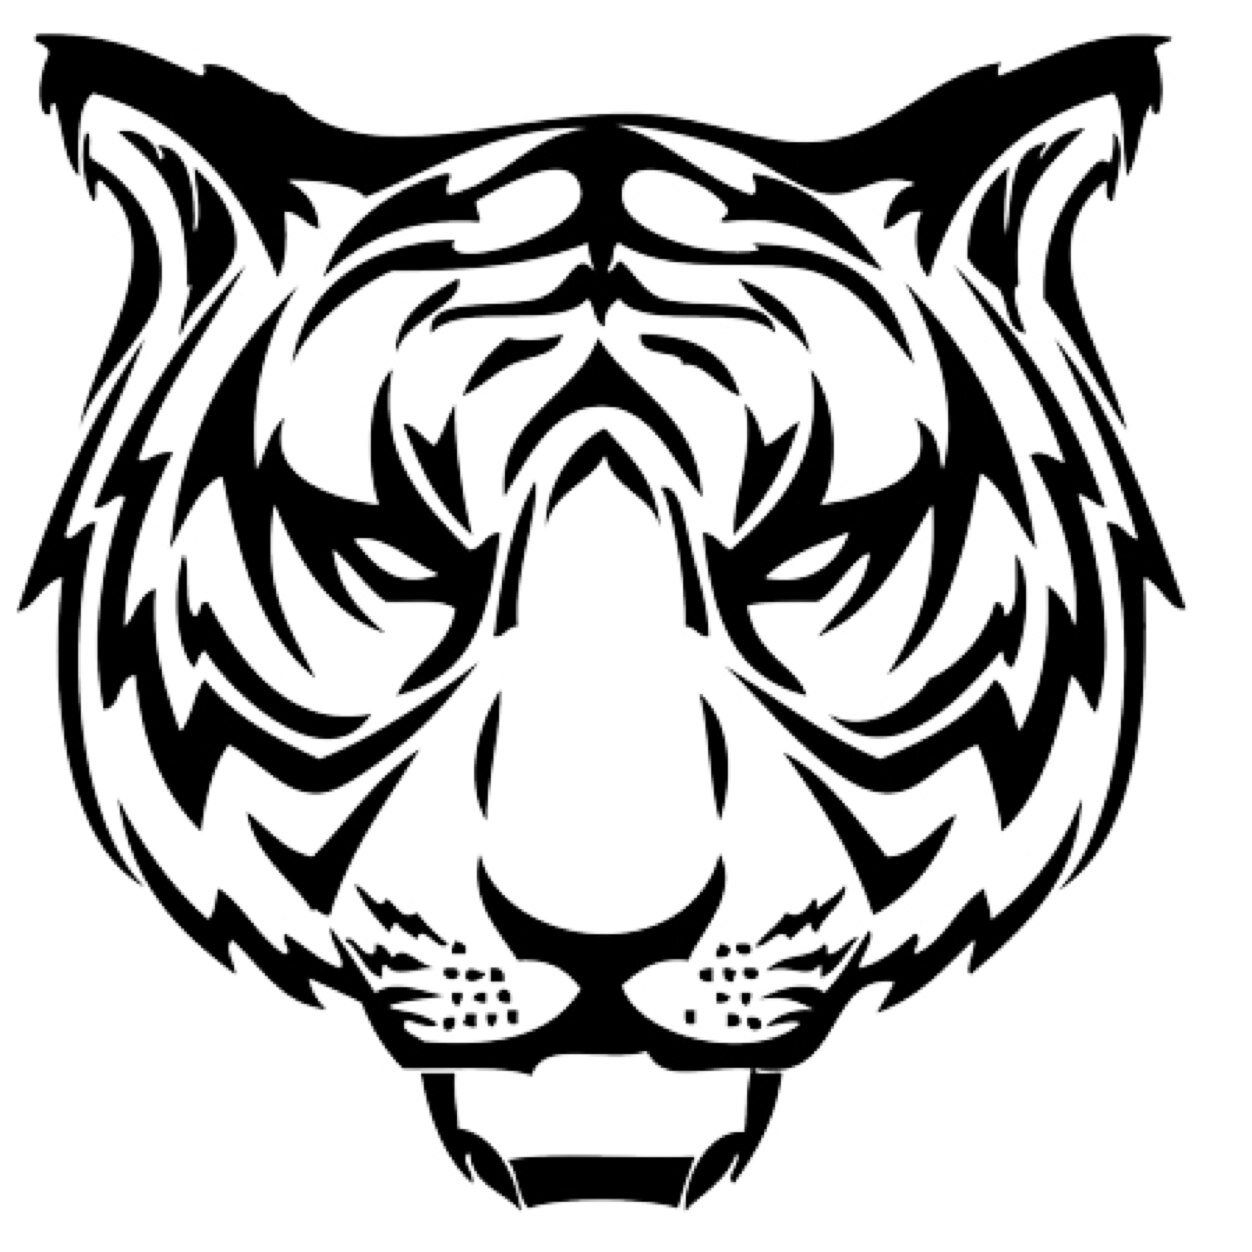 1252x1252 Angry Tiger Face Tattoo Sketch